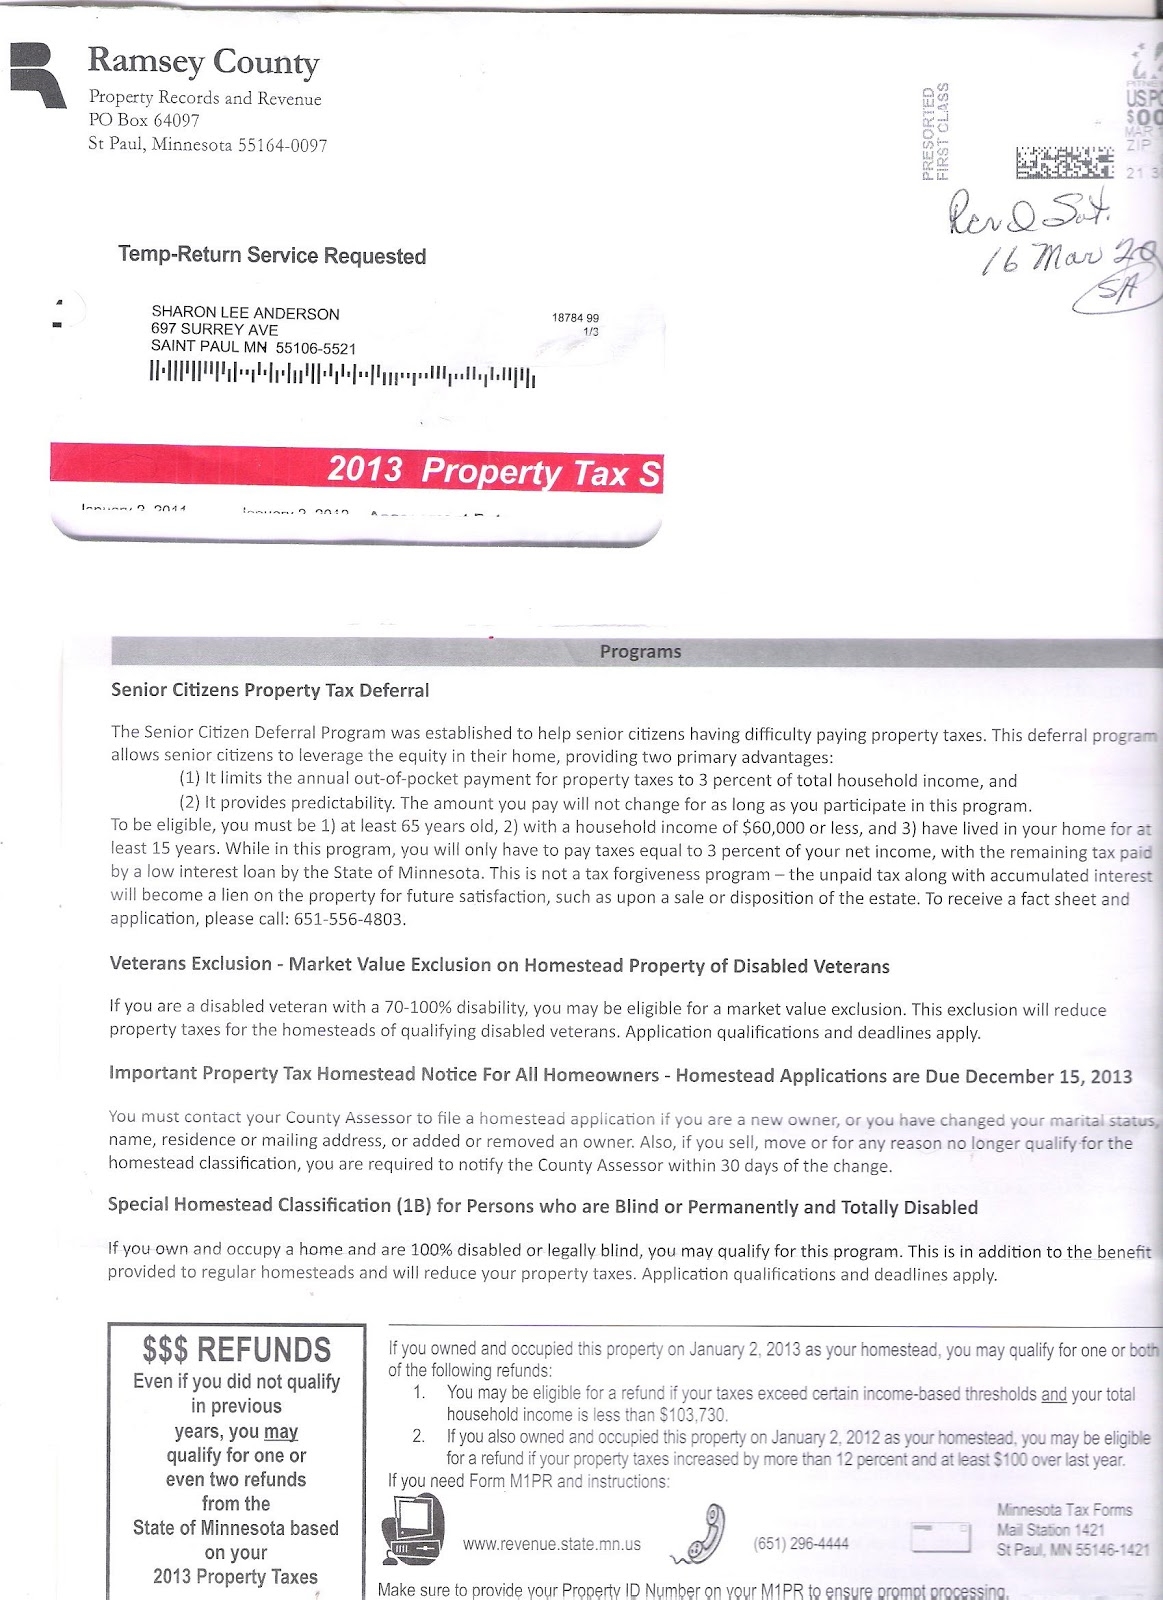 Unsigned Letter stating $2,680.00 paid not recorded?